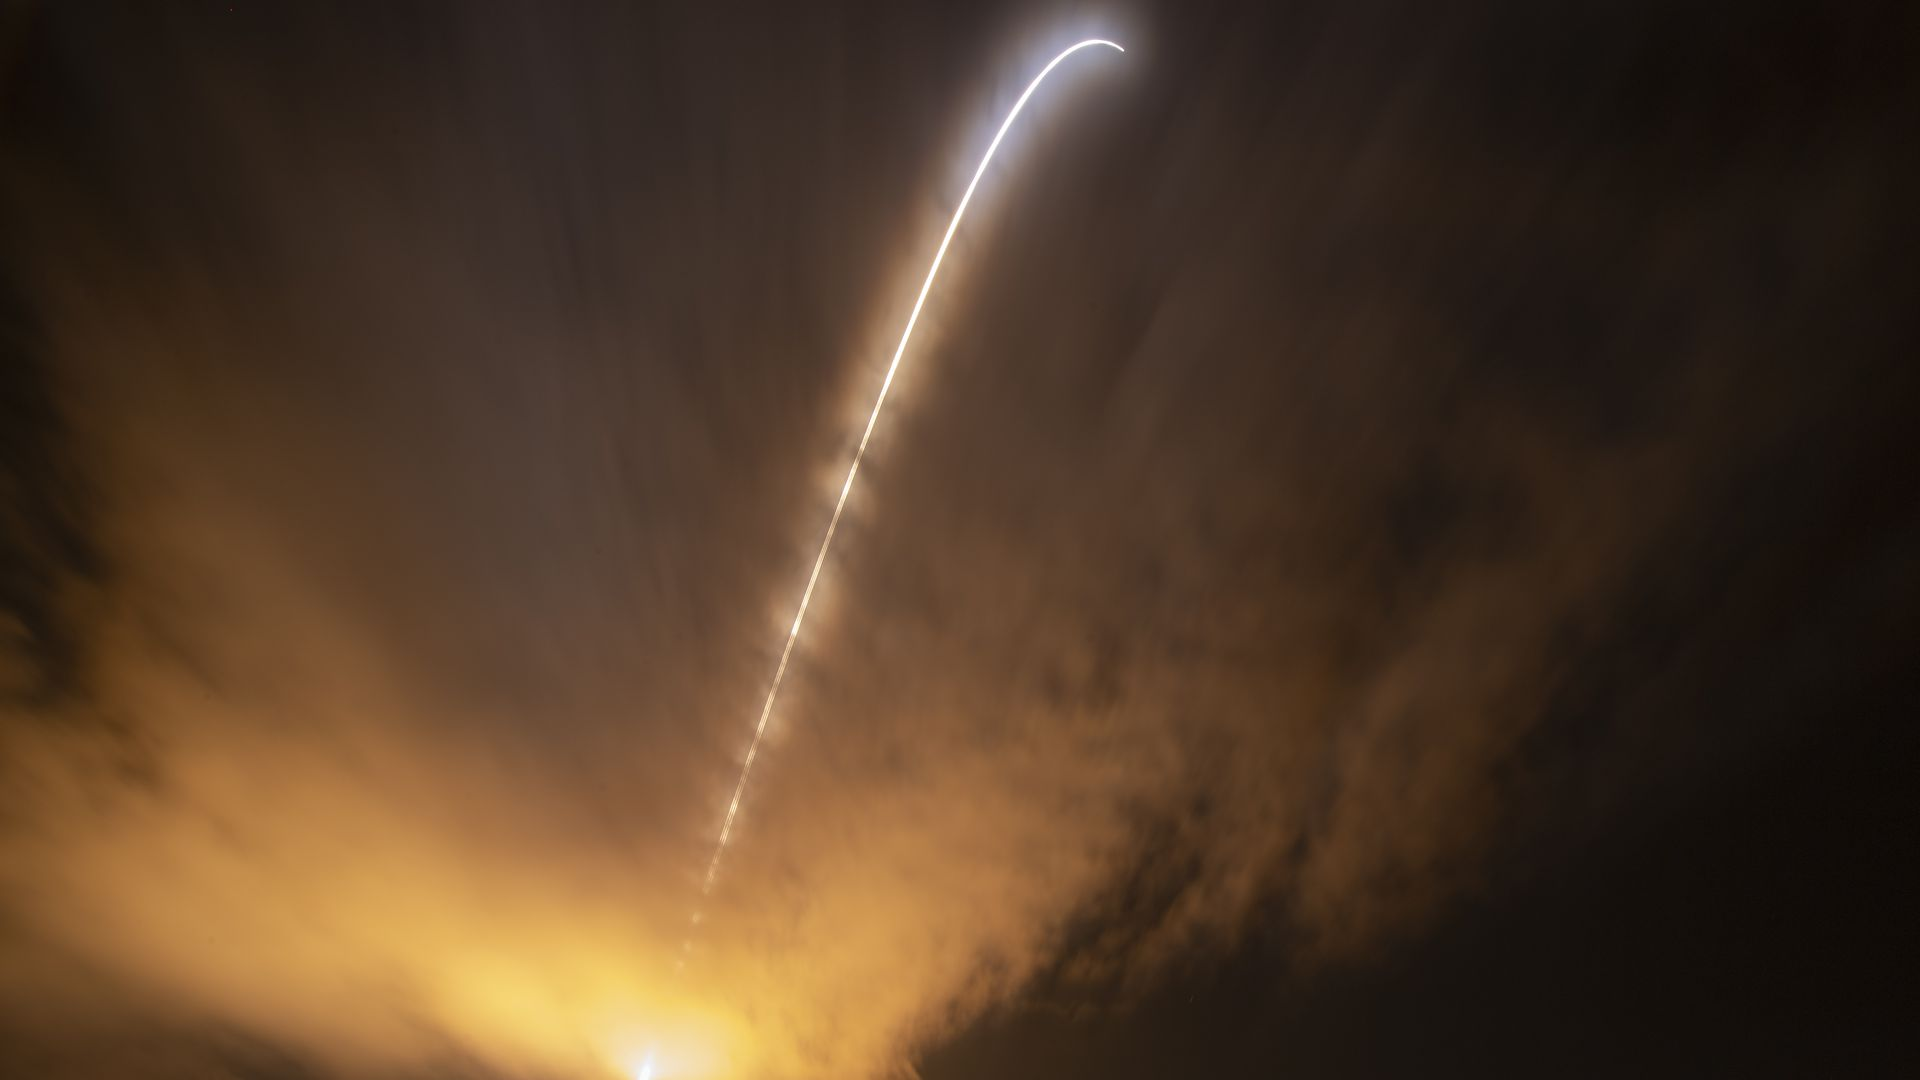 A rocket launches Nasa's Parker Solar Probe. It appears as a streak of light in a dark and gold sky.